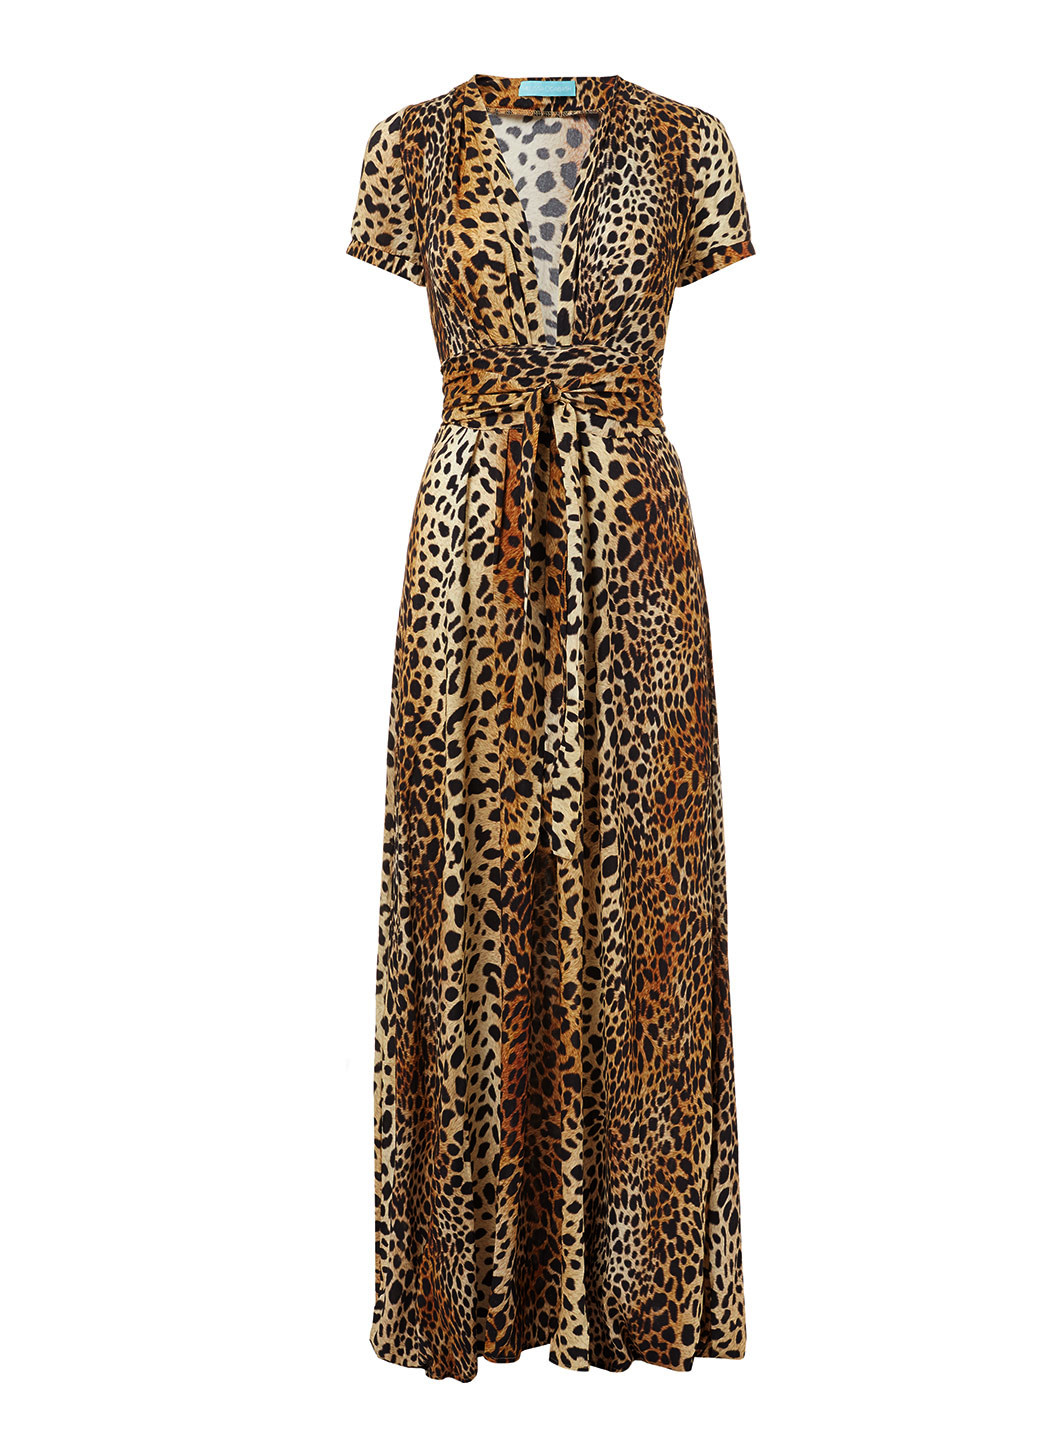 lou-cheetah-vneck-belted-maxi-dress-2019